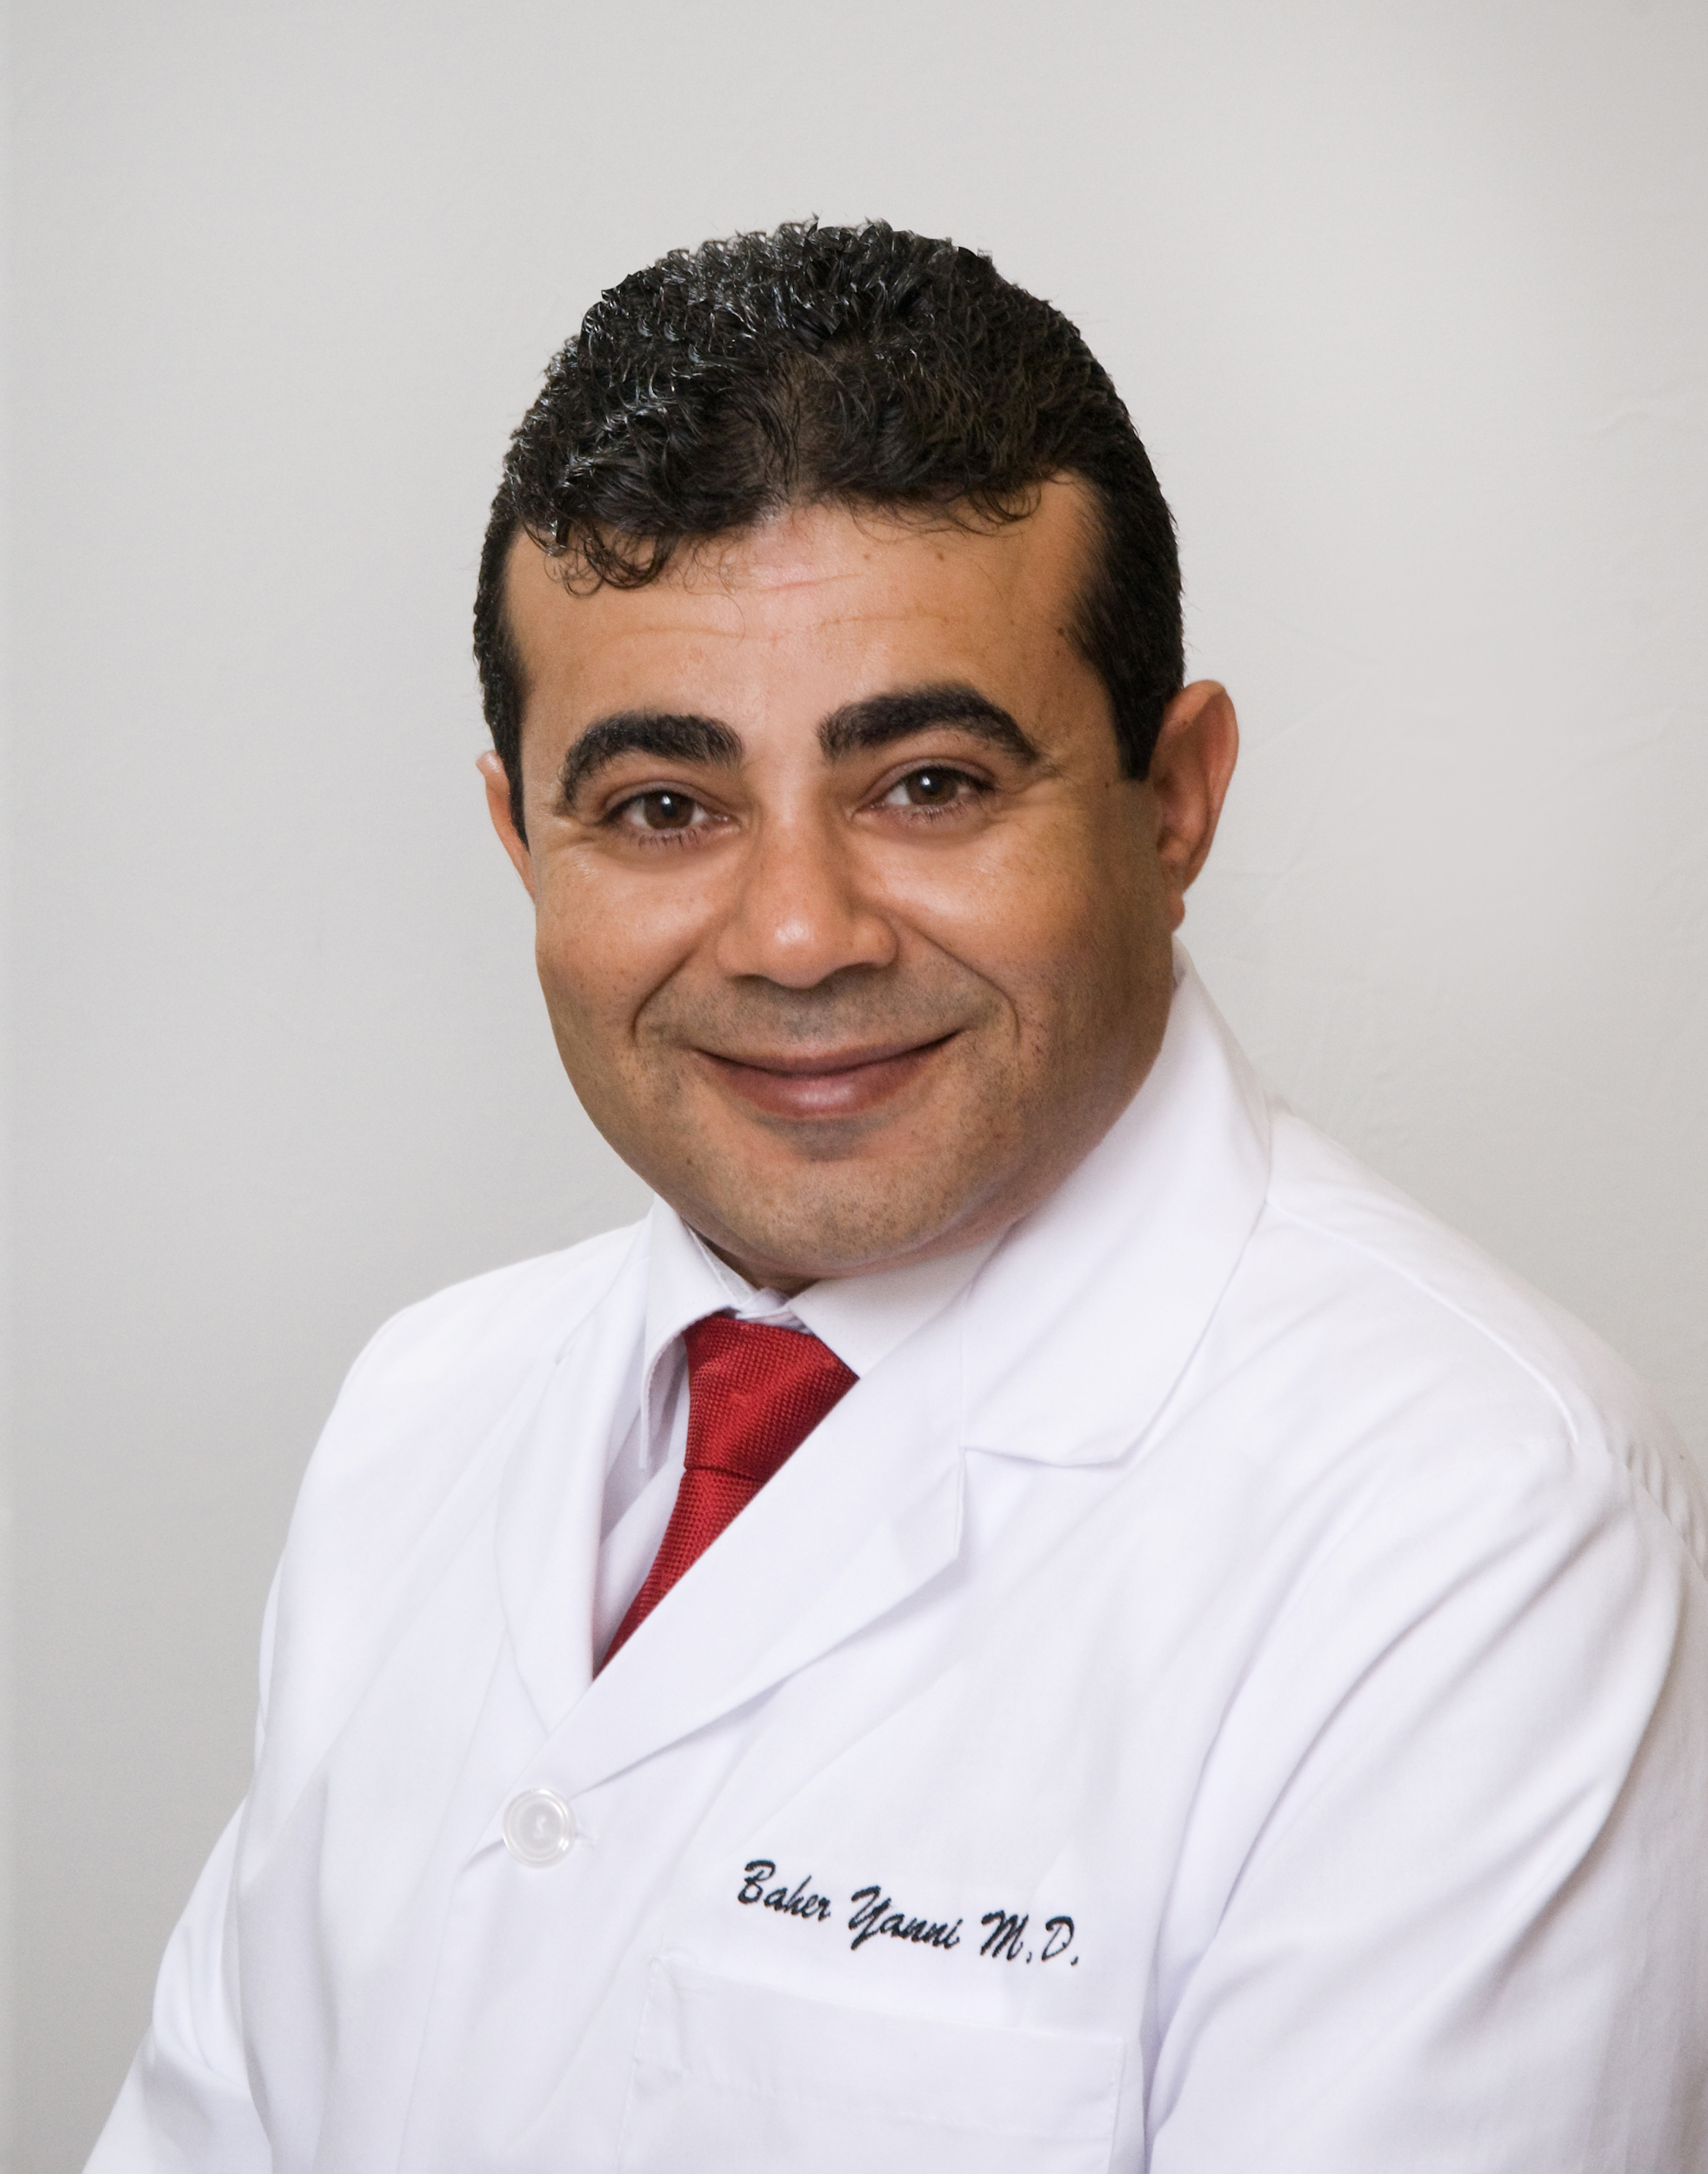 Baher Yanni MD pain management